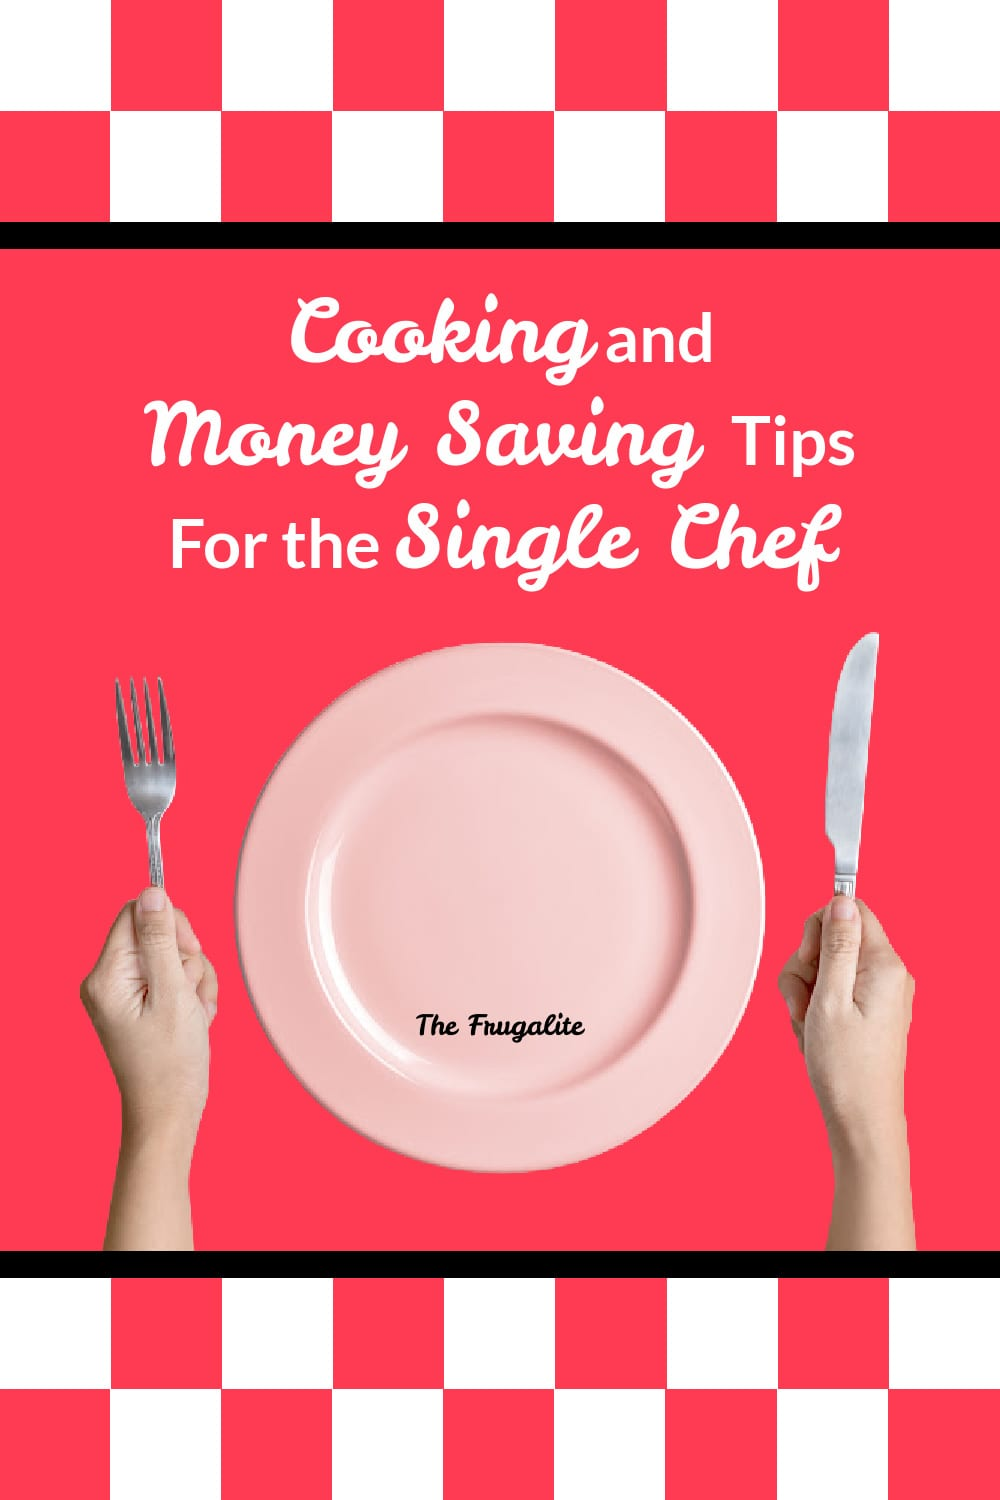 Cooking and Money Saving Tips For the Single Chef